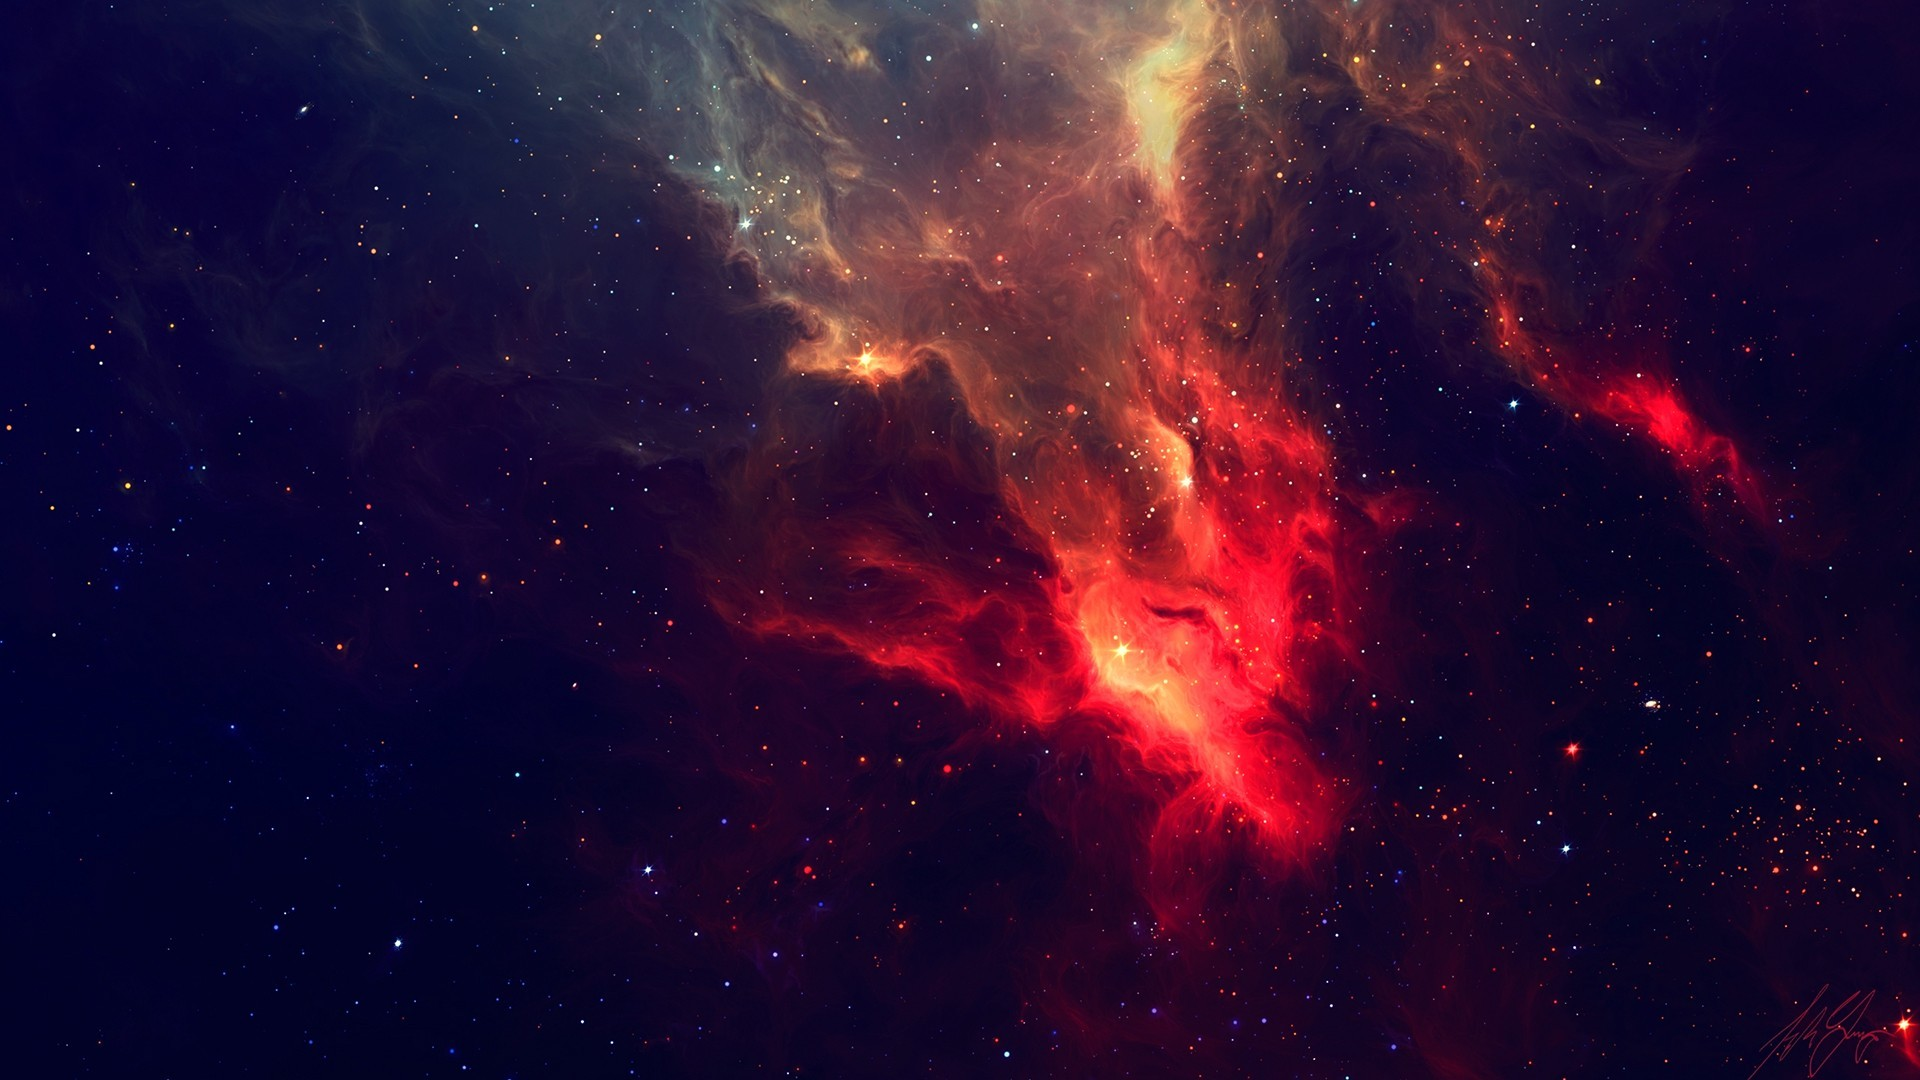 #space, #stars, #nebulae | Wallpaper No. 6693 – wallhaven.